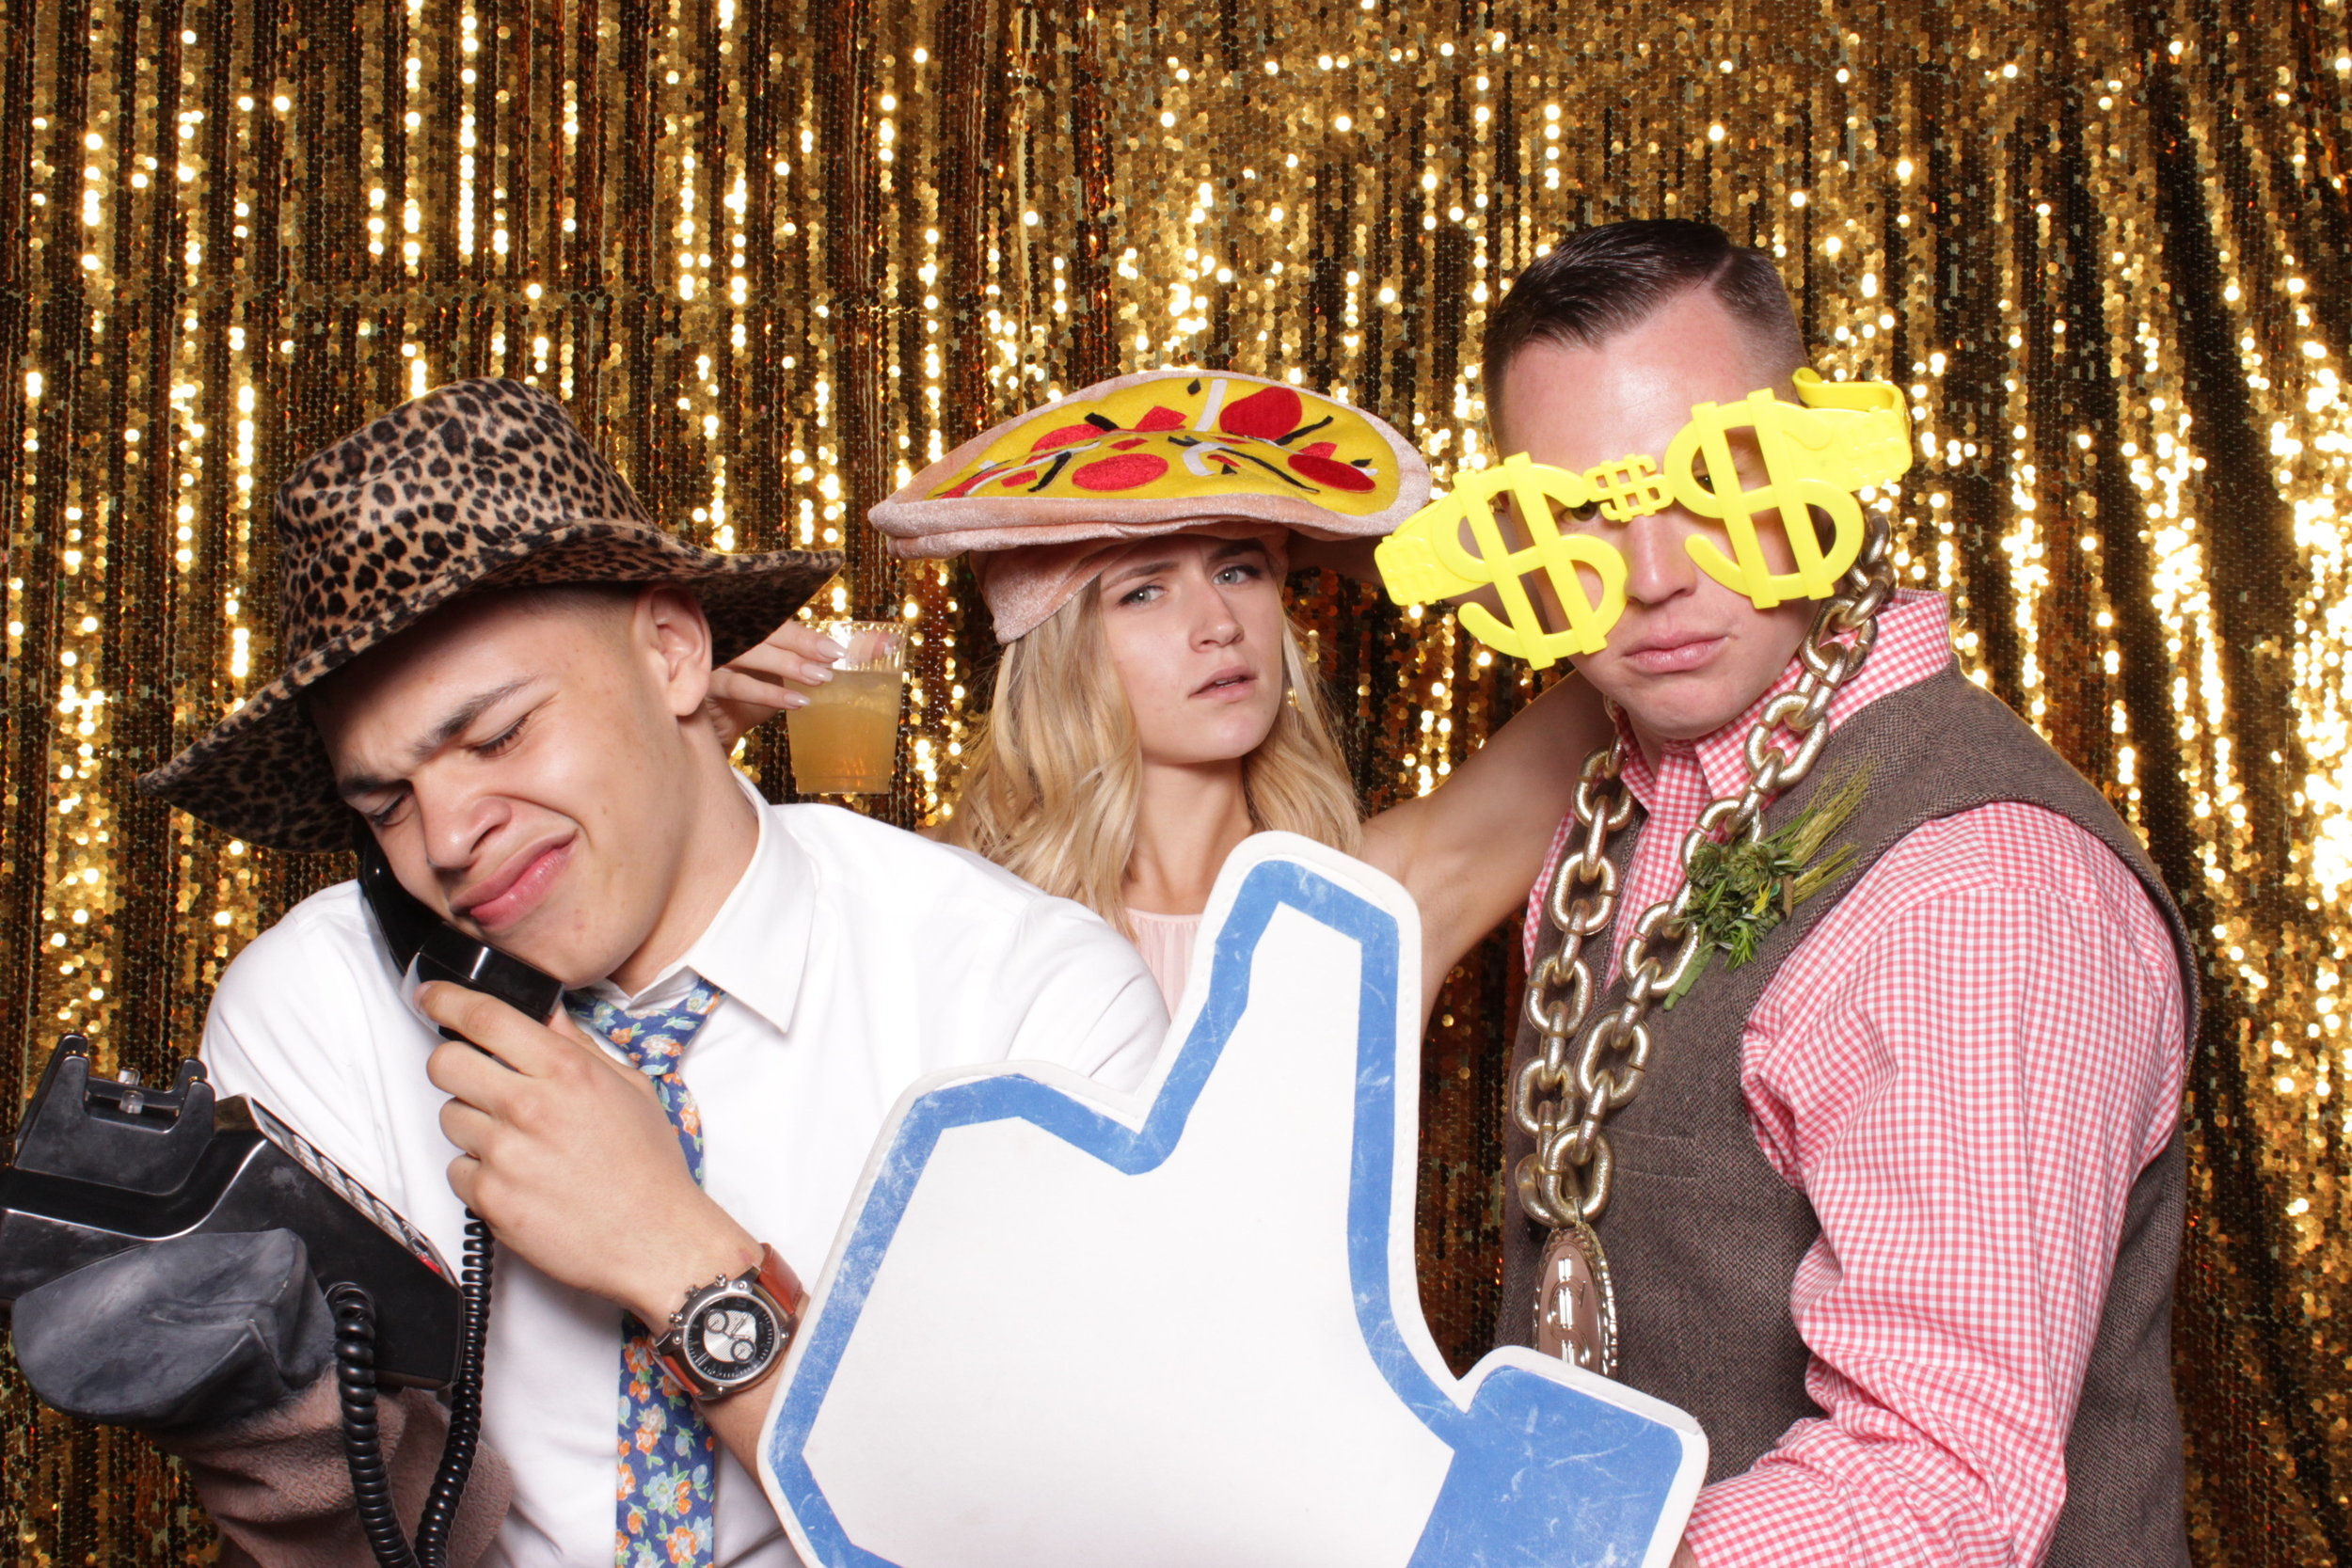 chico-wedding-photo-booth-rental-funny-people